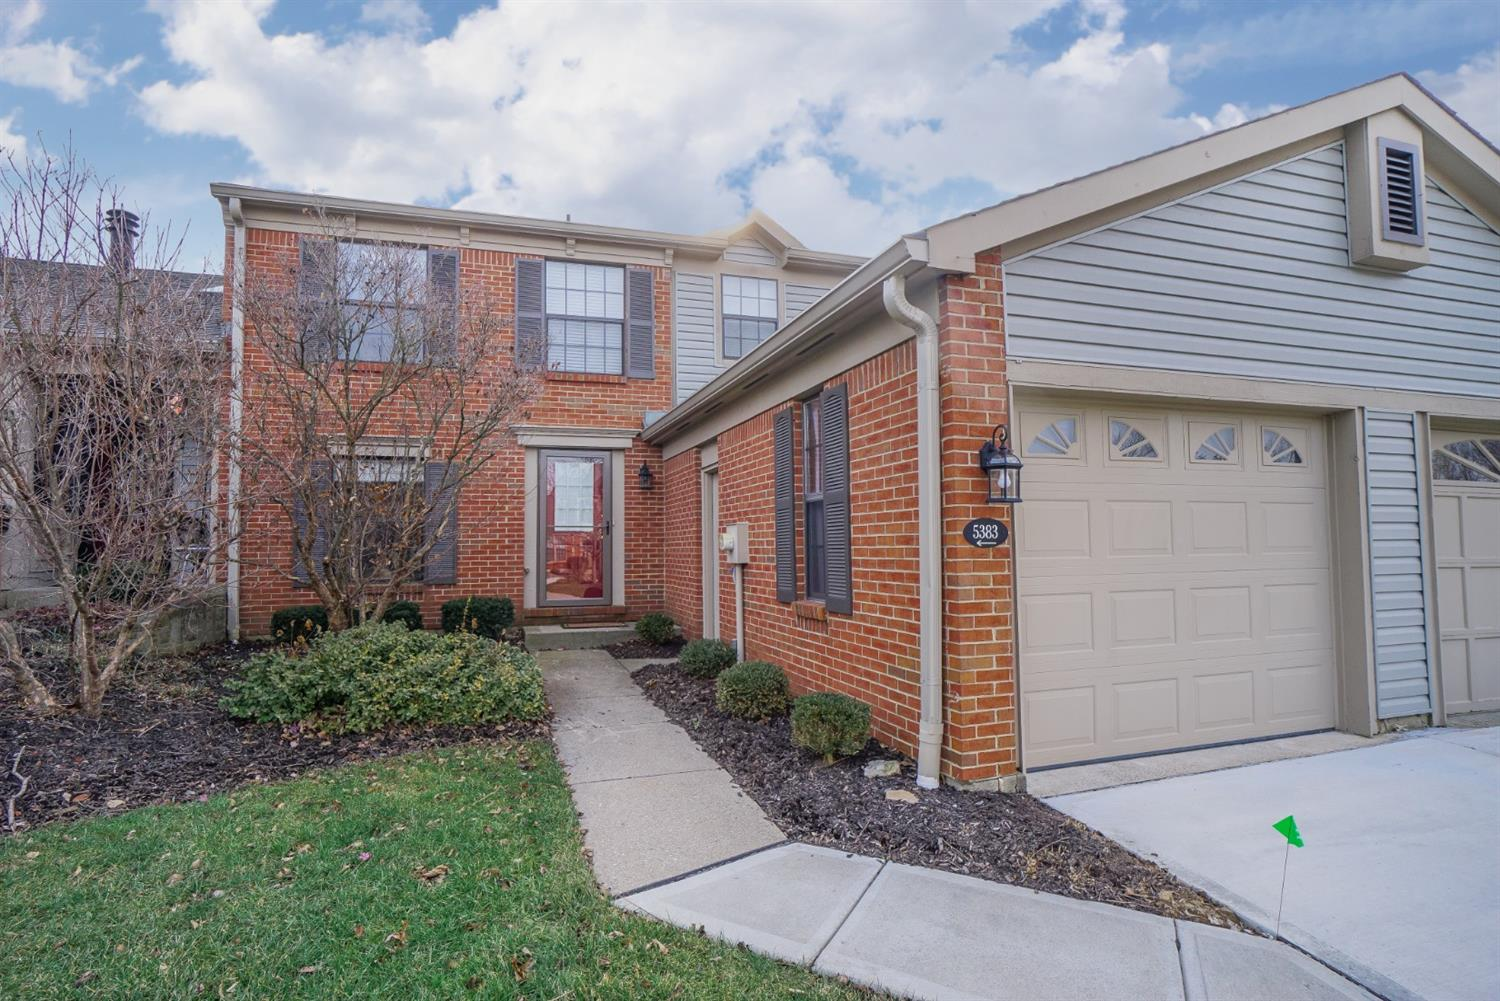 Property for sale at 5383 Dickens Drive, Sharonville,  OH 45241